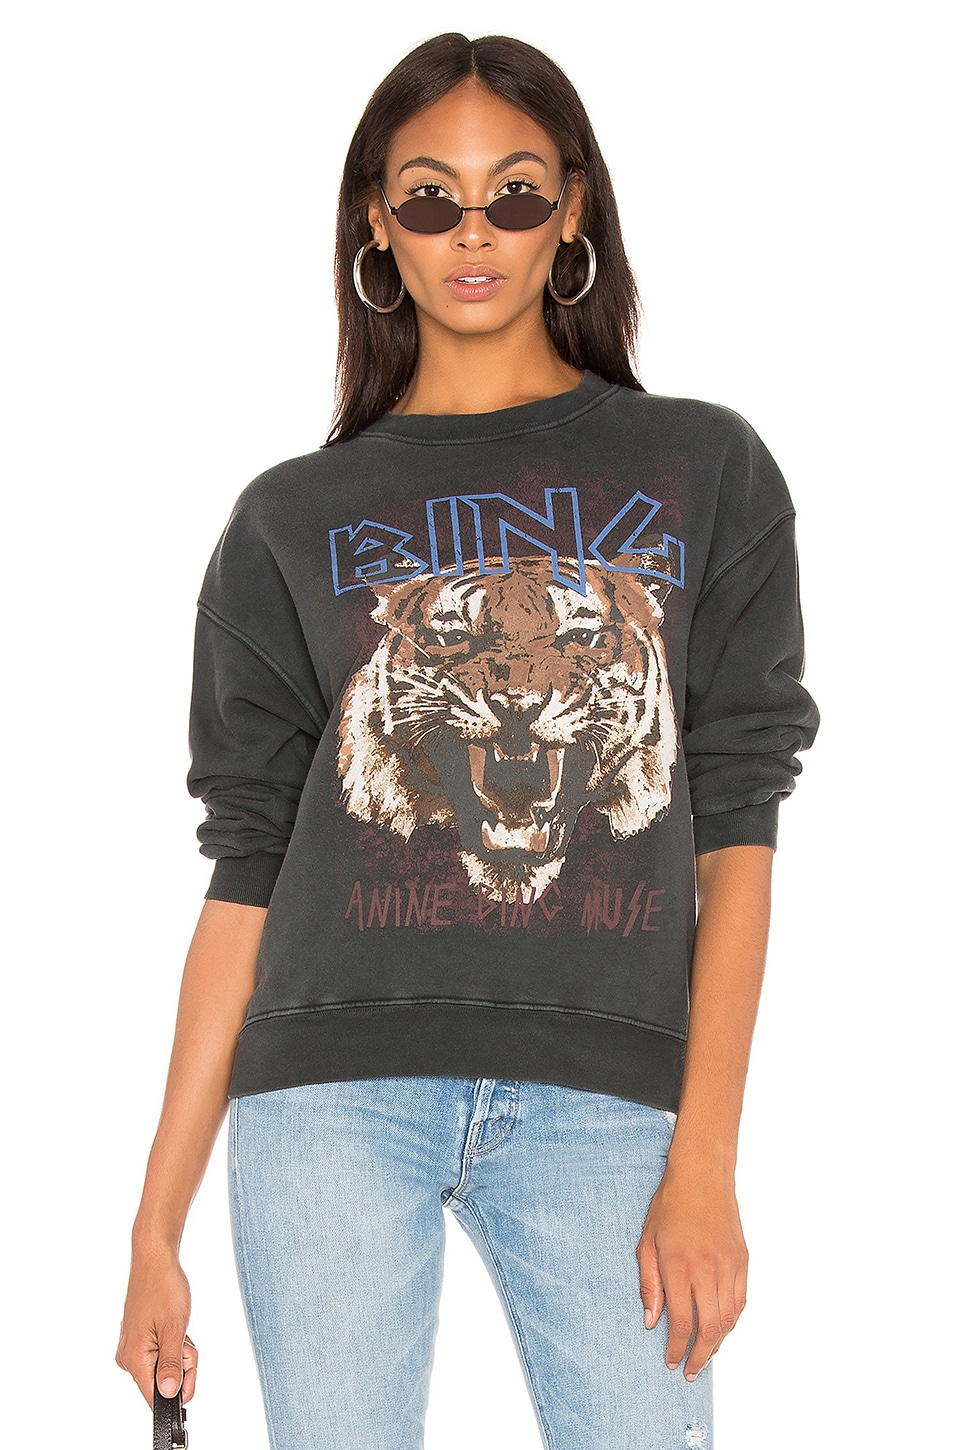 Tiger Sweatshirt                     ANINE BING 5